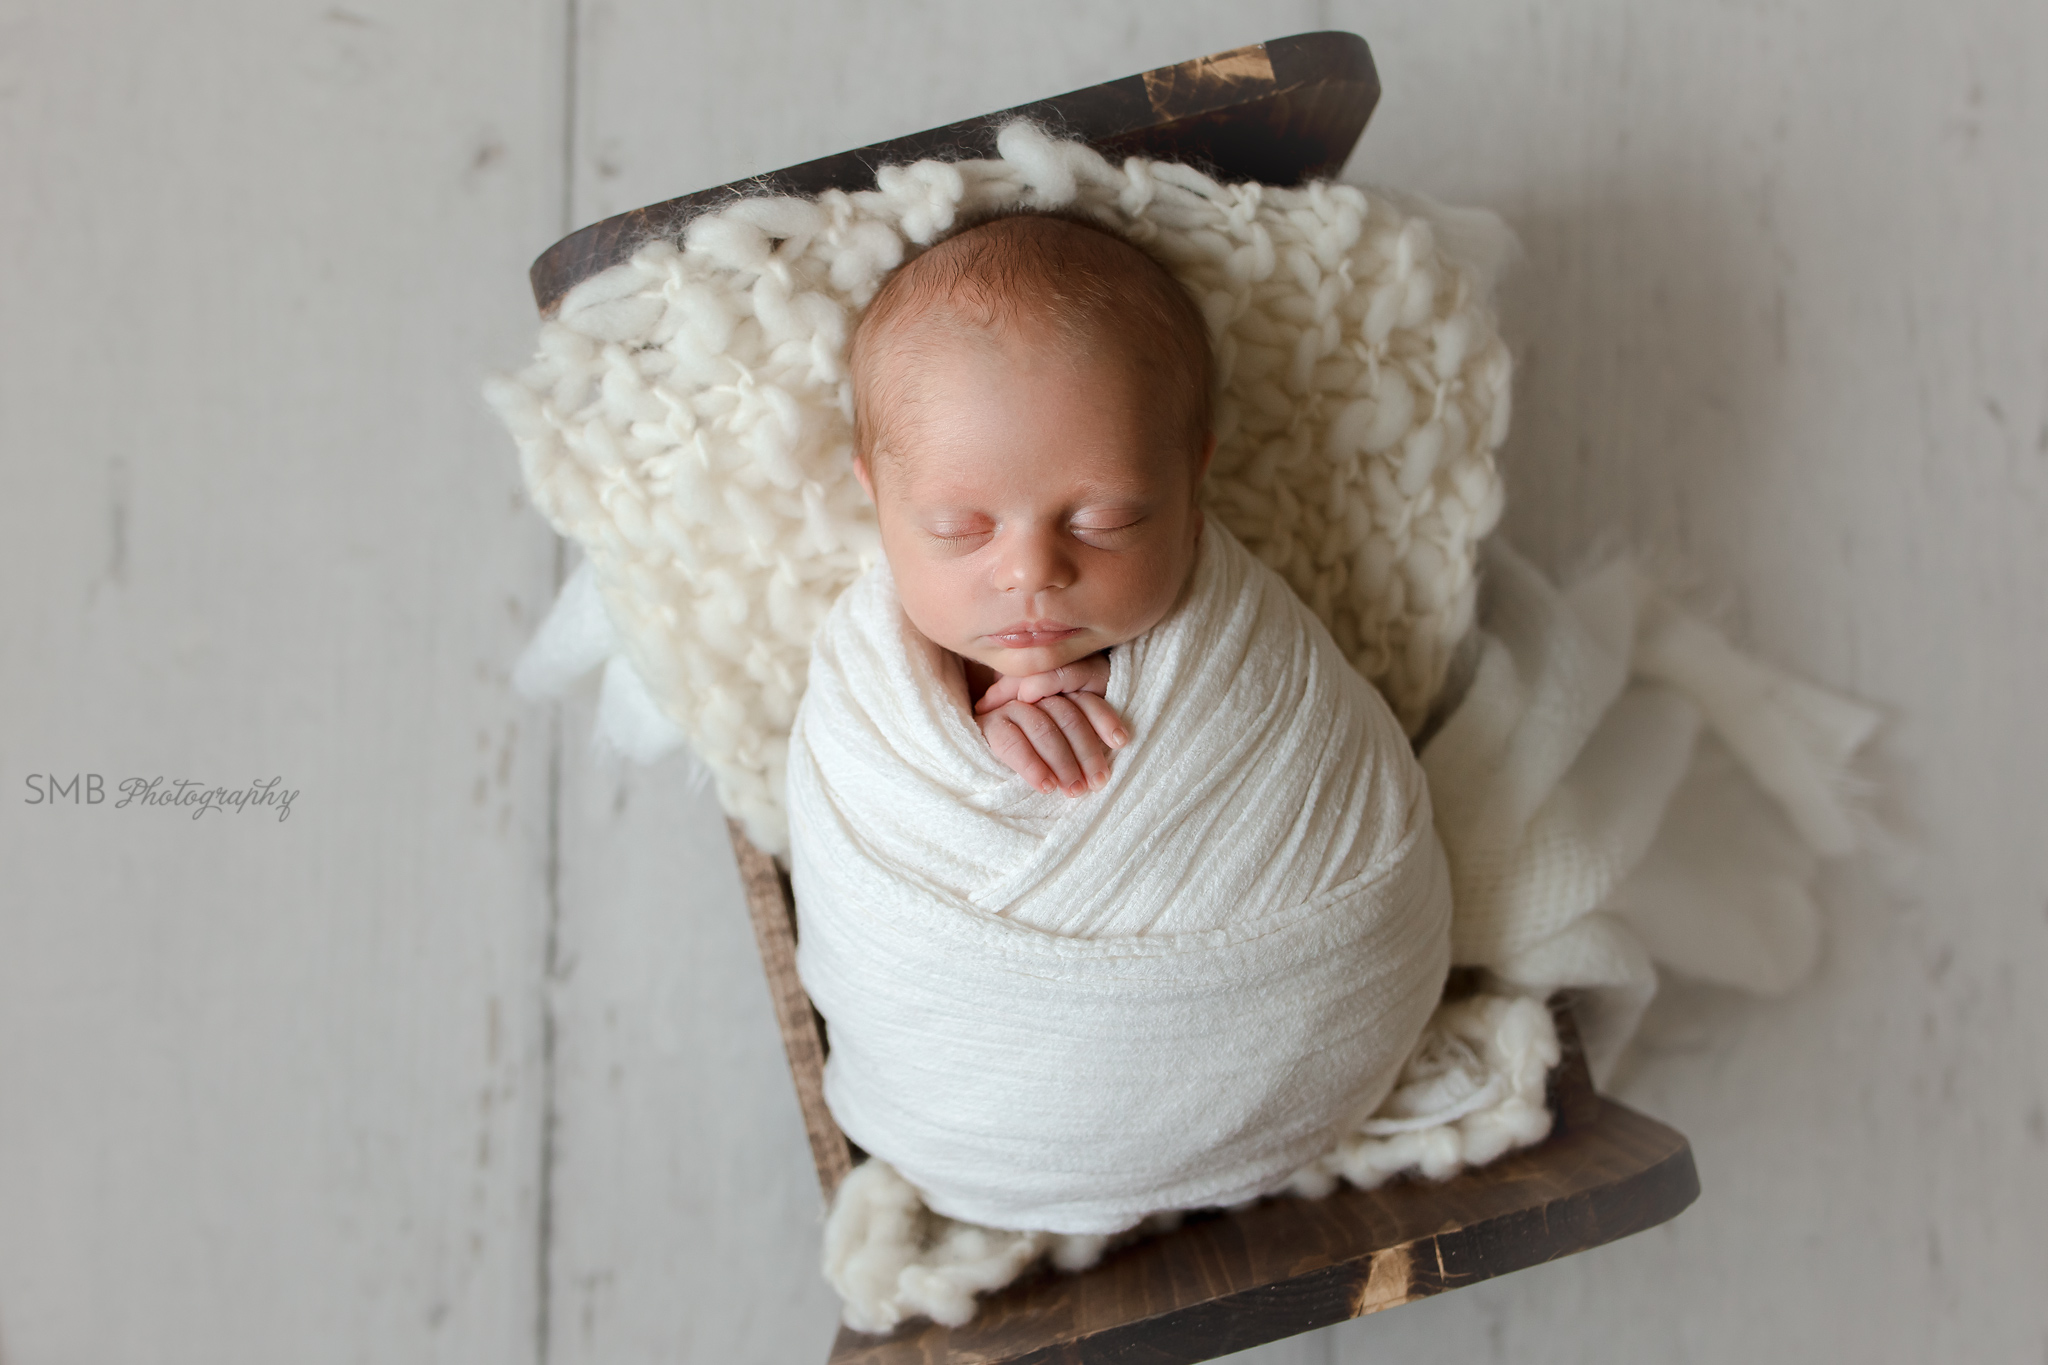 Baby boy wrapped in newborn cradle